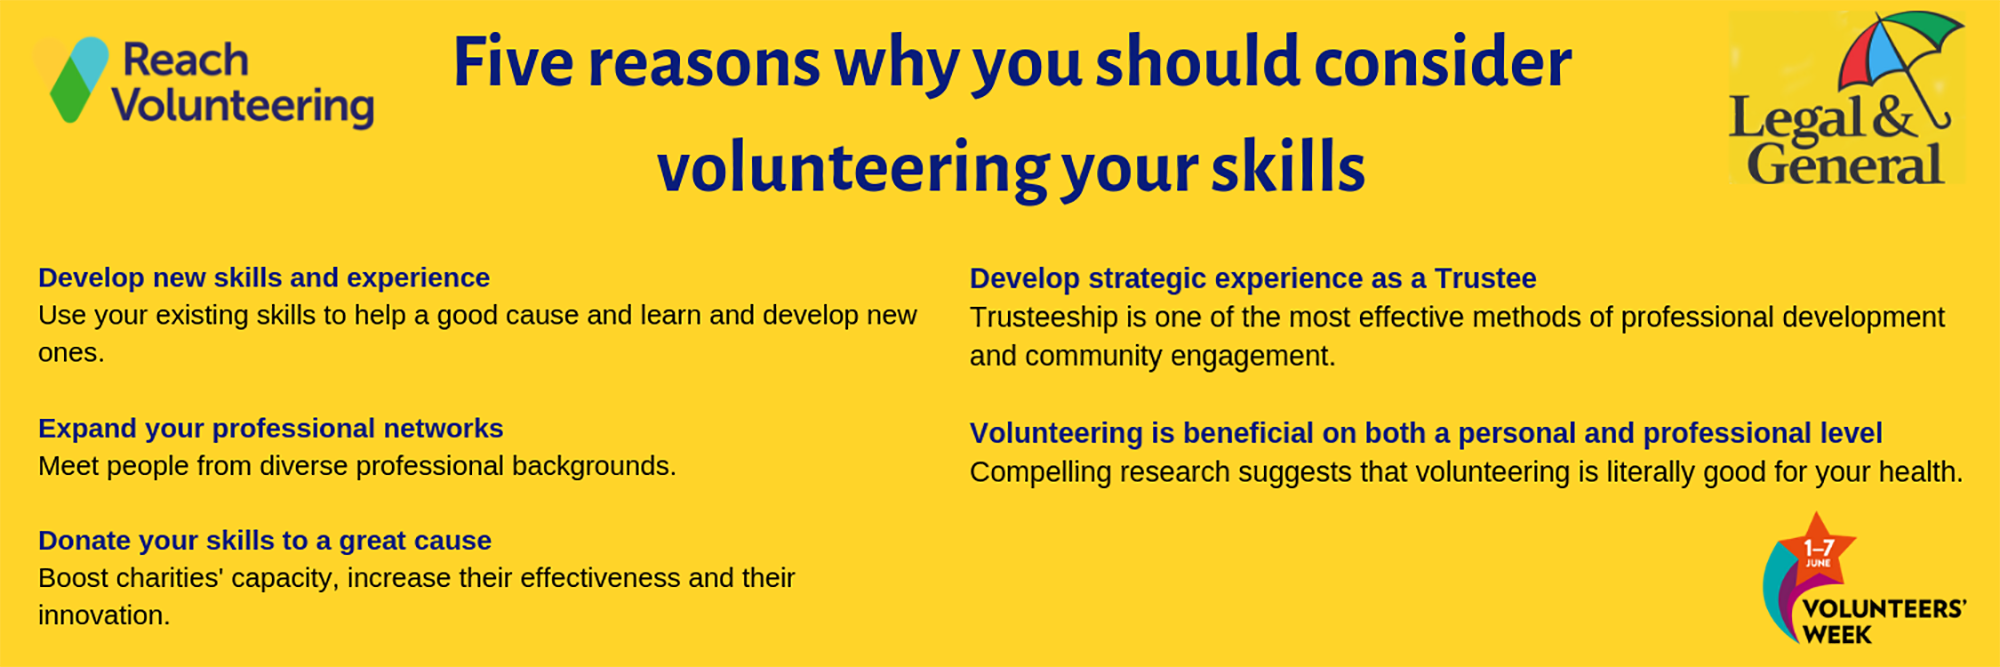 Five reasons to volunteer your skills